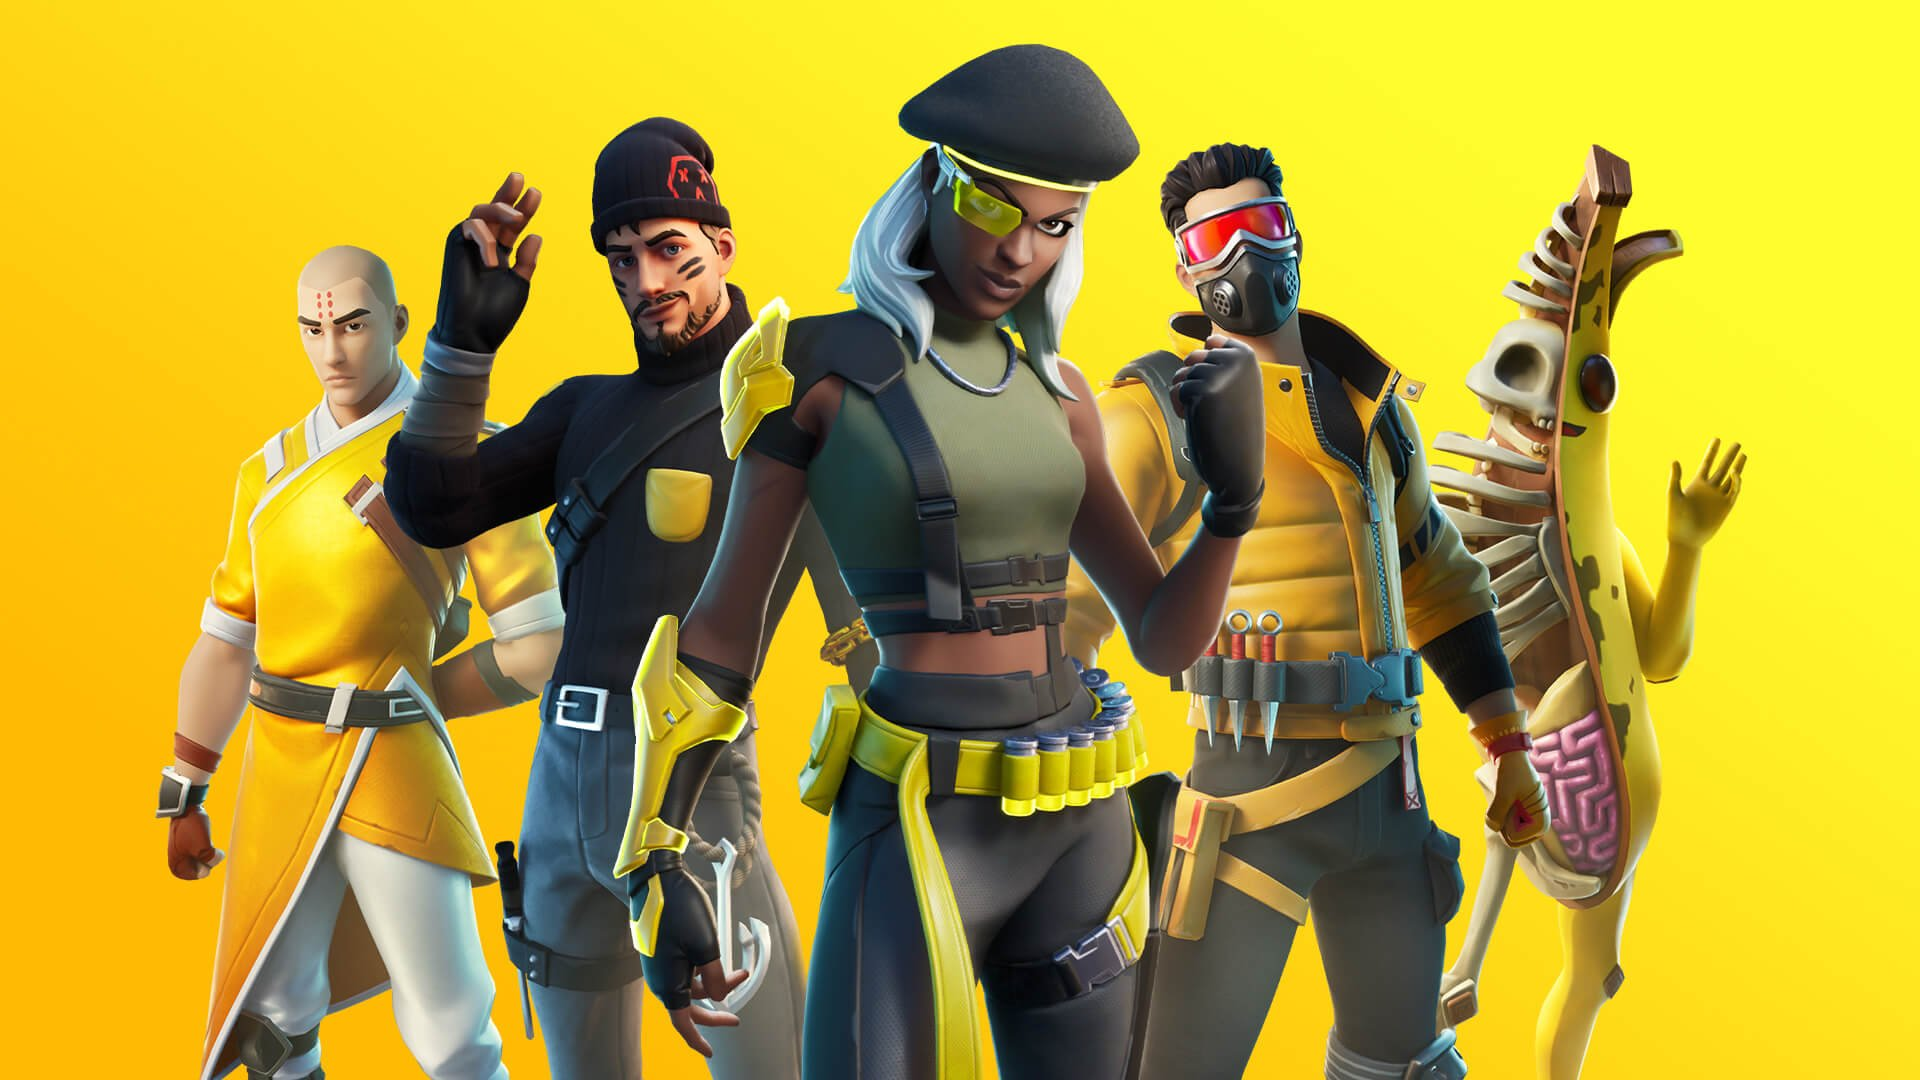 Fortnite On Next-Gen Runs At 4K Resolution On Xbox Series S (1080p), 60FPS, And Support For PlayStation 5 DualSense